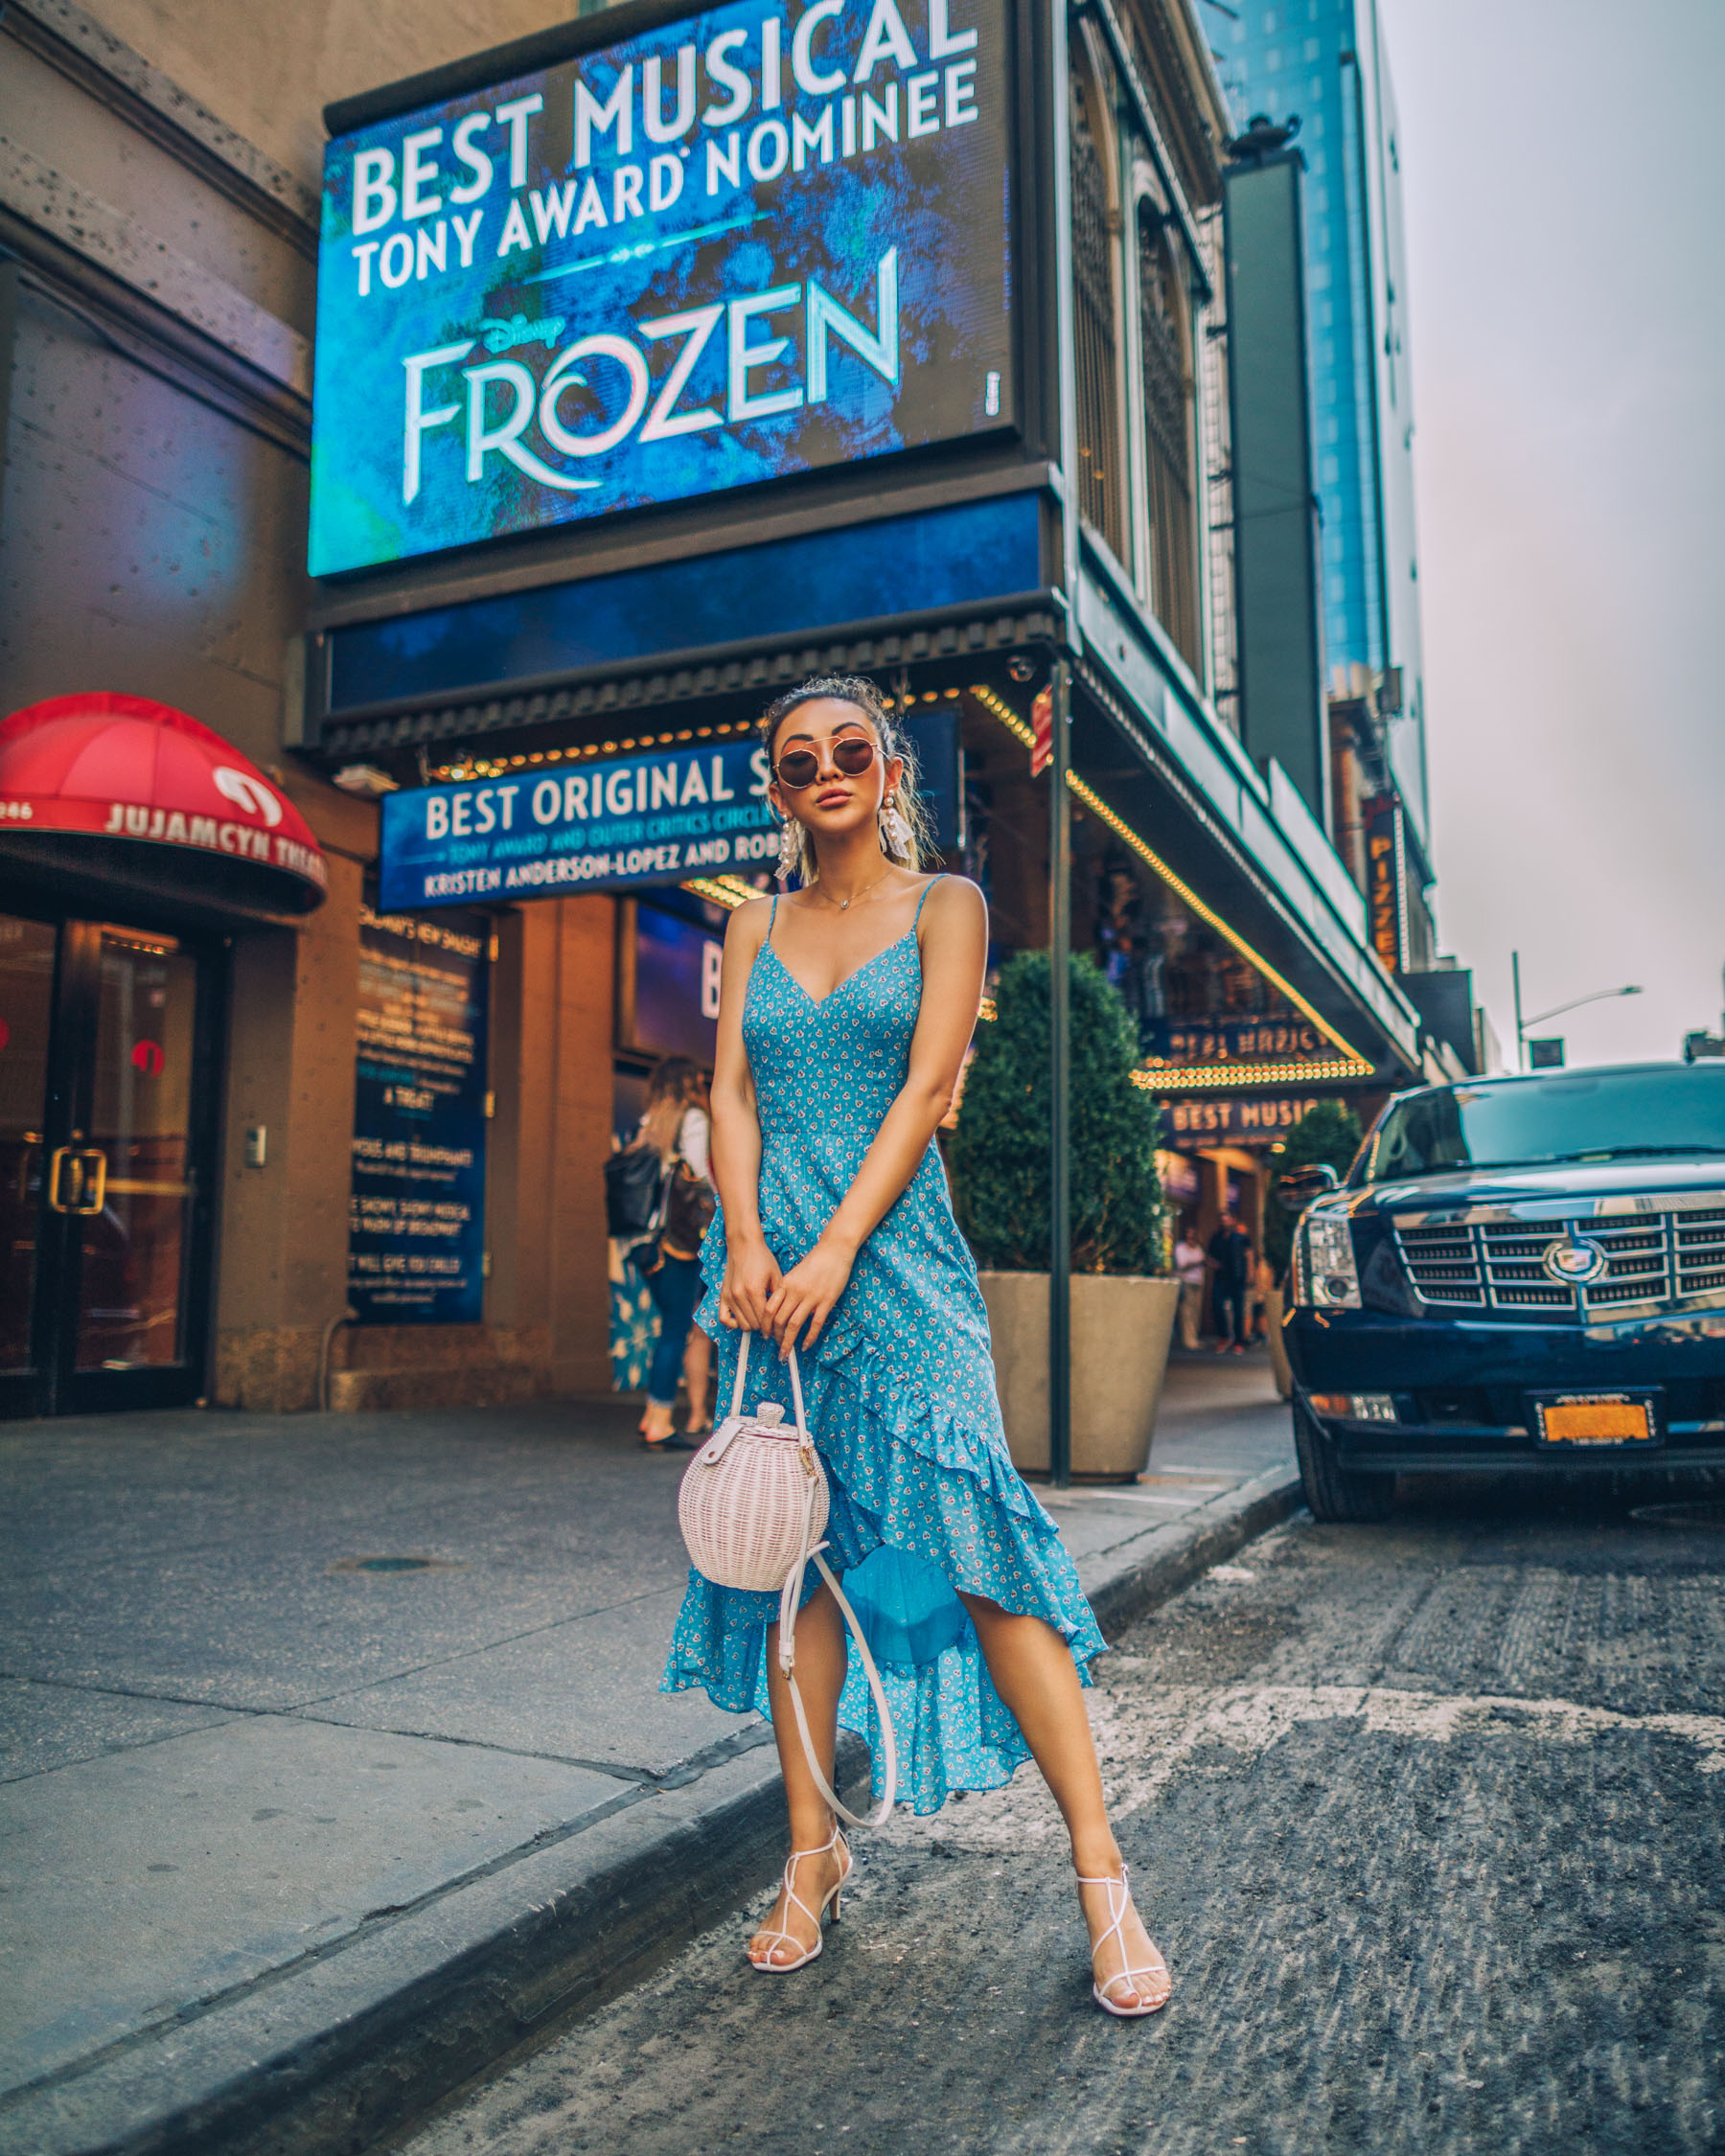 day-to-night outfit ideas, loveshackfancy dress, Frozen Broadway, Blue Ruffle Dress // Notjessfashion.com